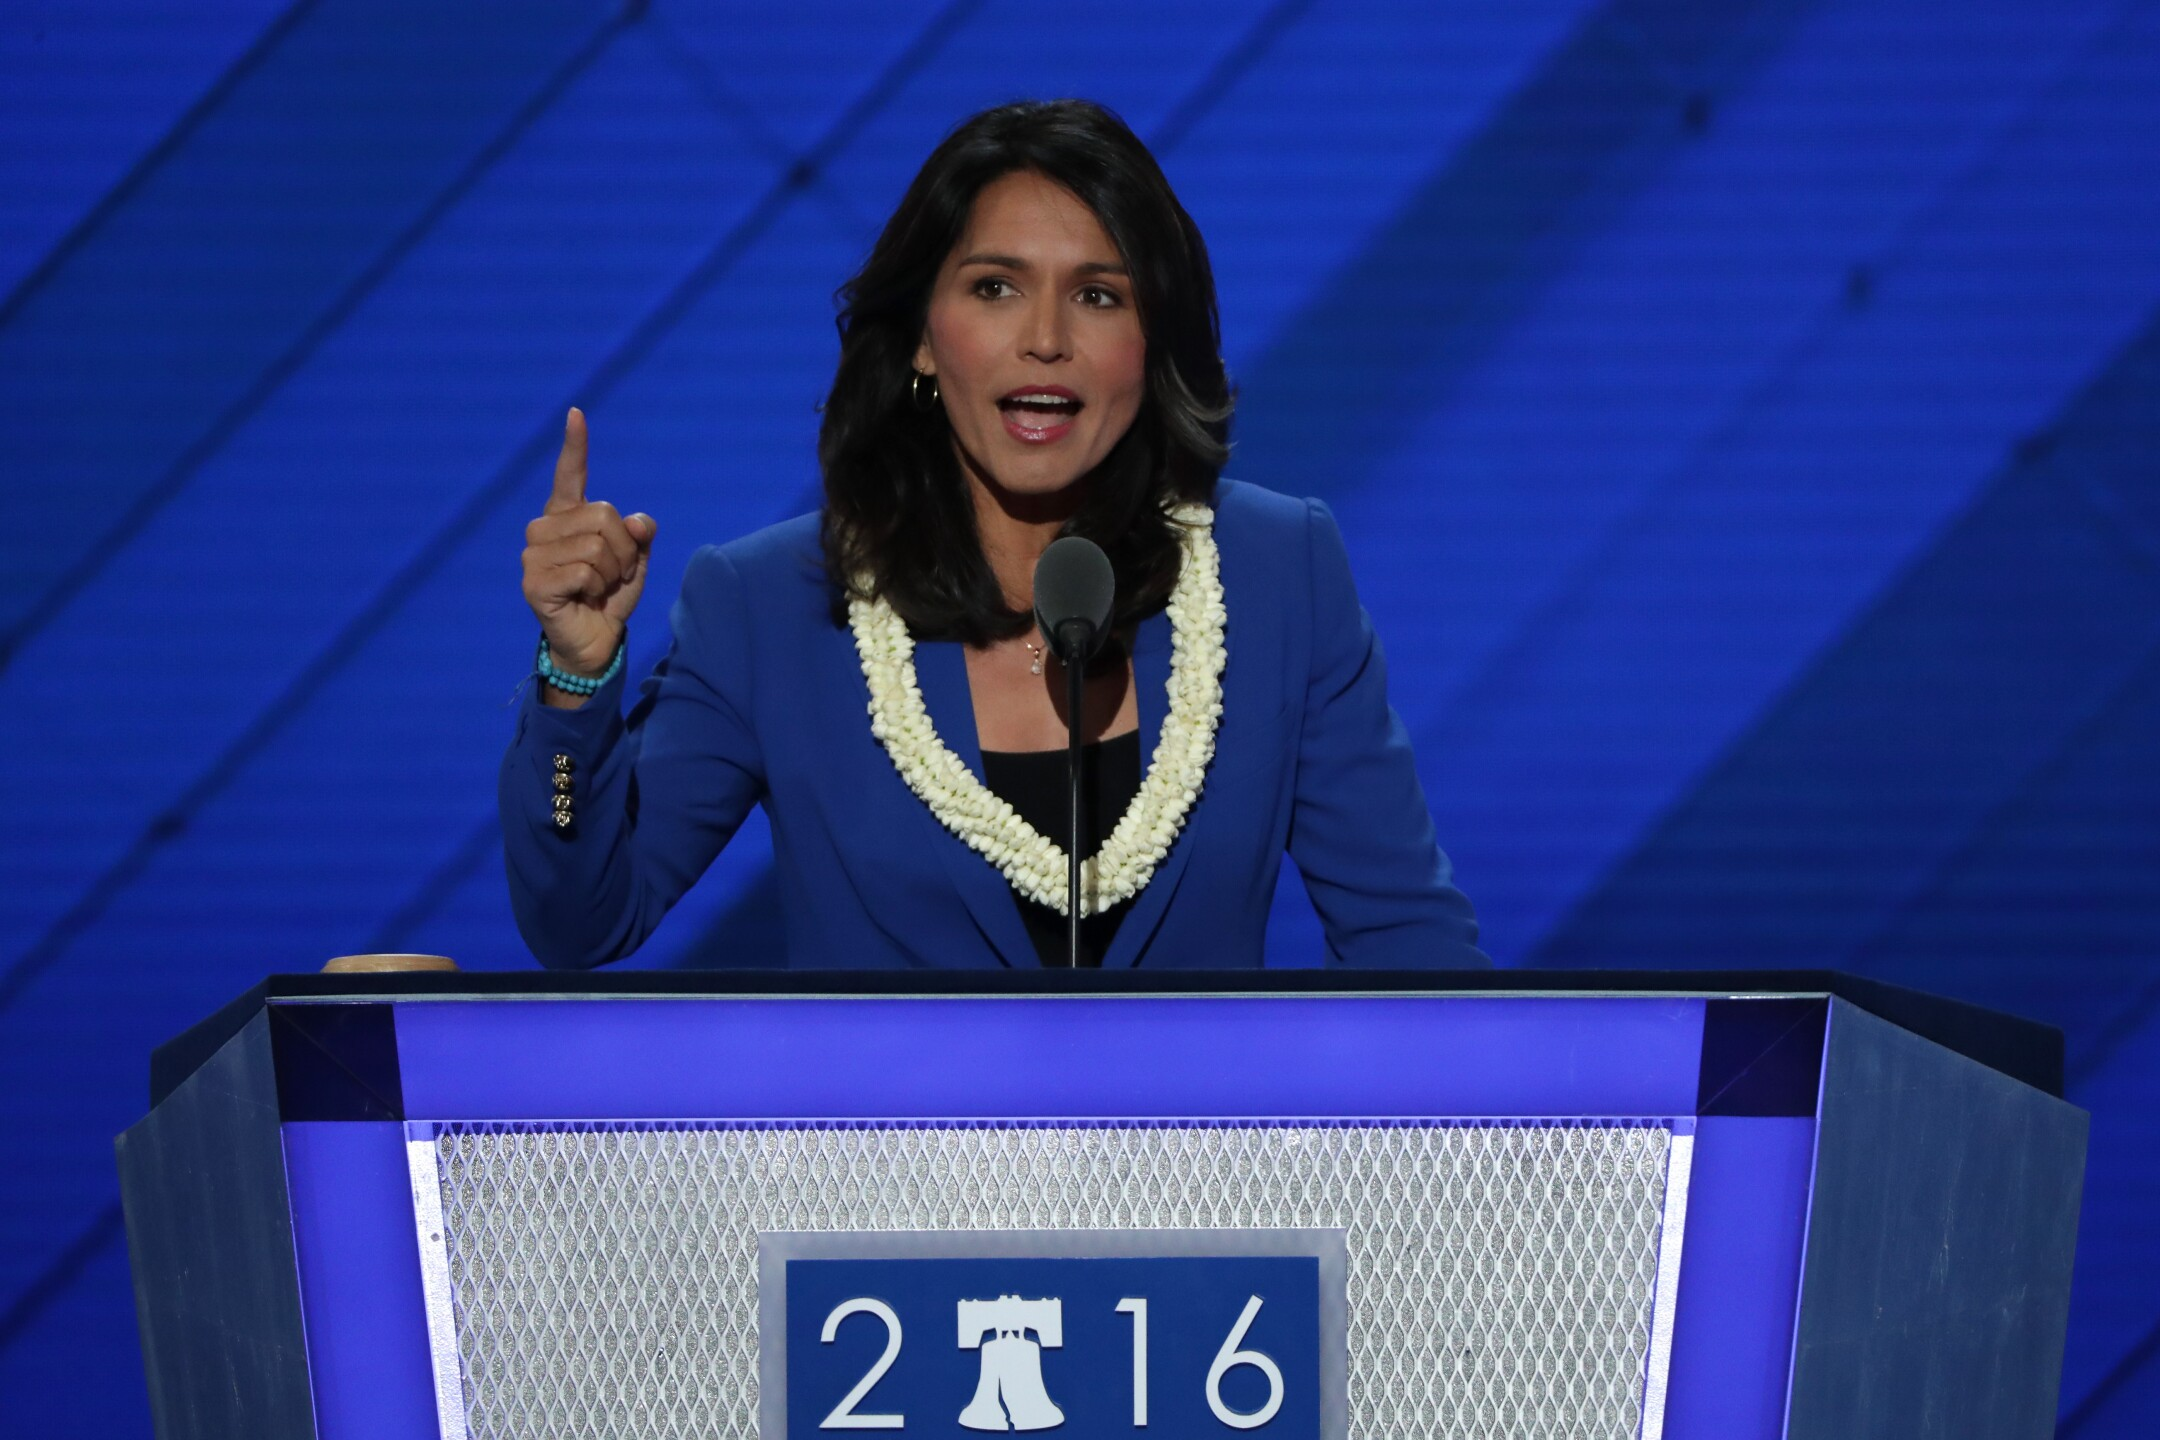 Tulsi Gabbard is a Hawaii politician who announced her candidacy in January 2019.